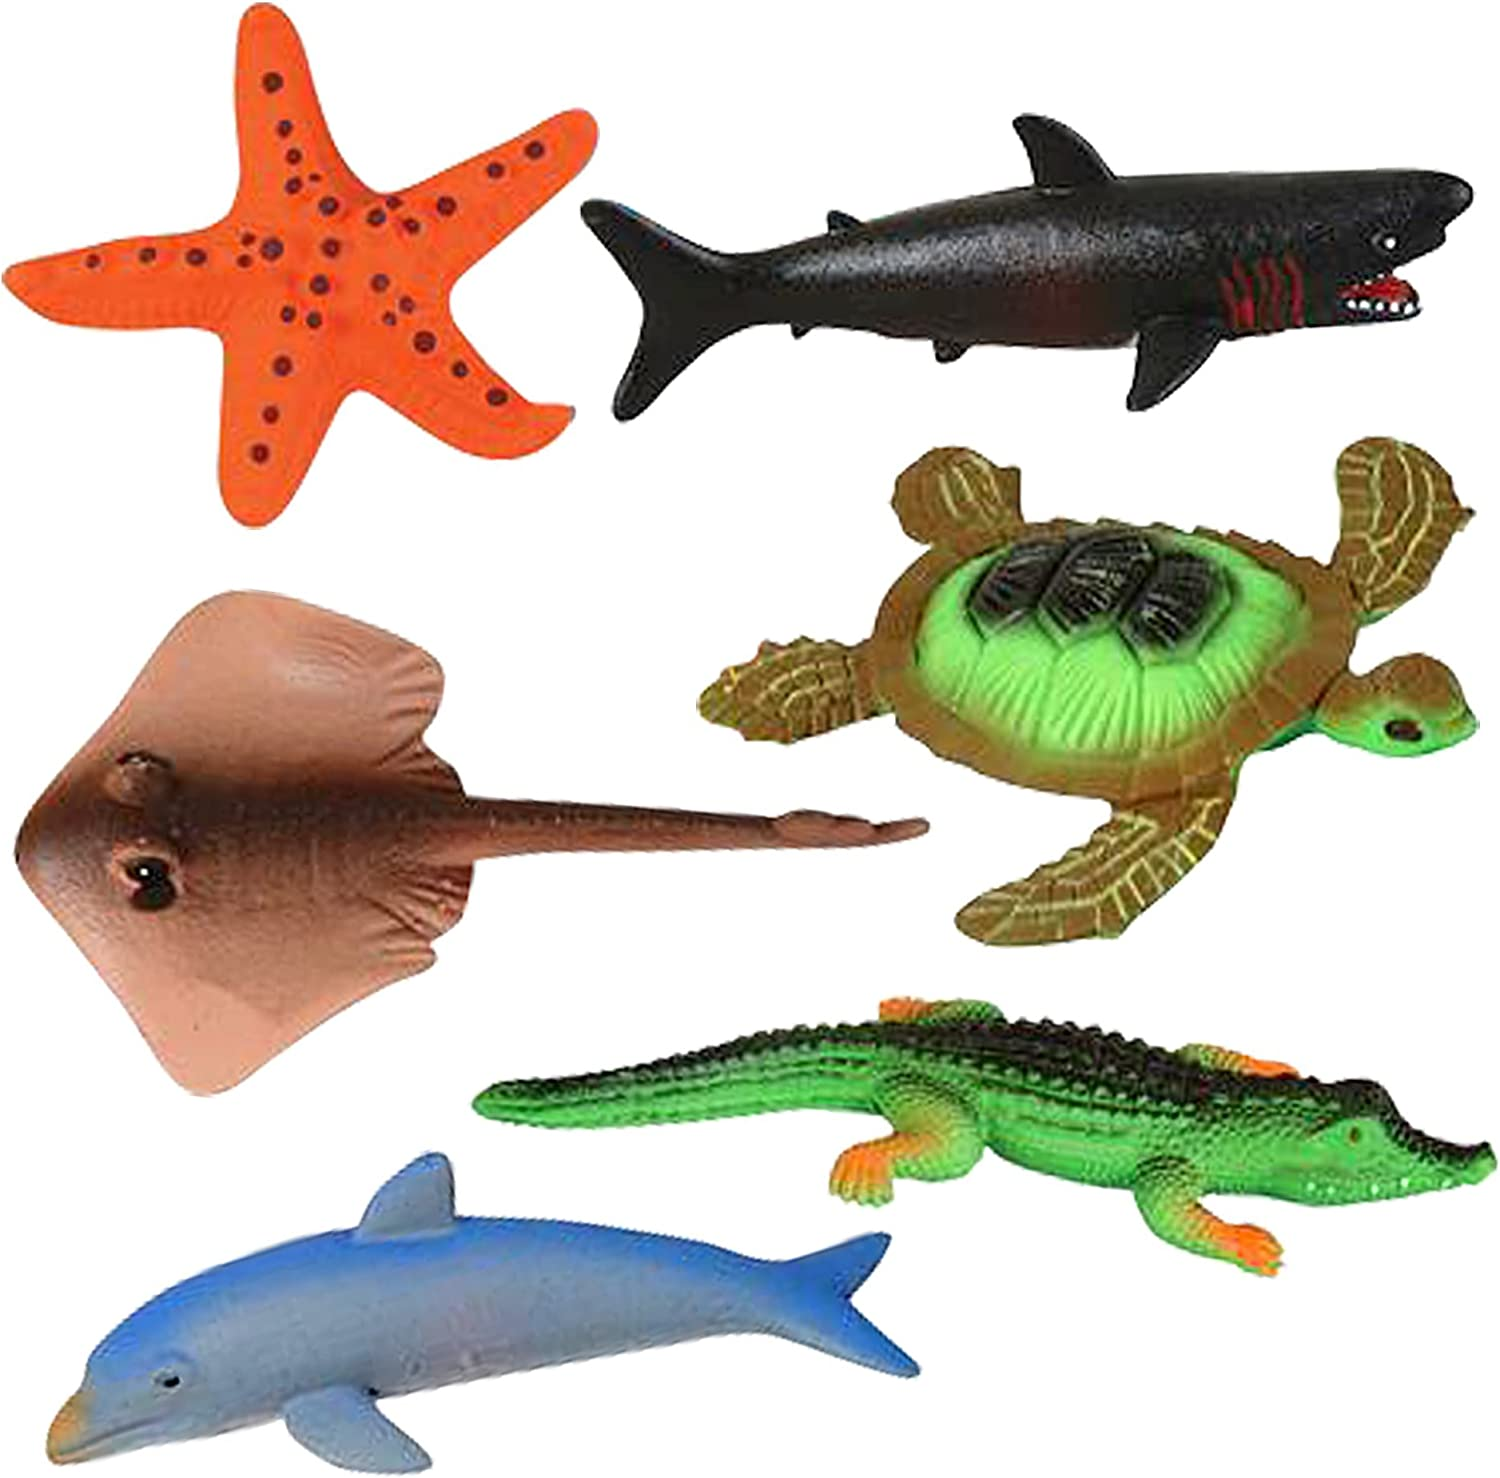 Growing Sea Animals by ArtCreativity 6 Different Water Expanding Sea Creatures  Grows 6X Larger   Amazing Sensory JellyLike Toy   Fun & Educational Gift for Boys & Girls.